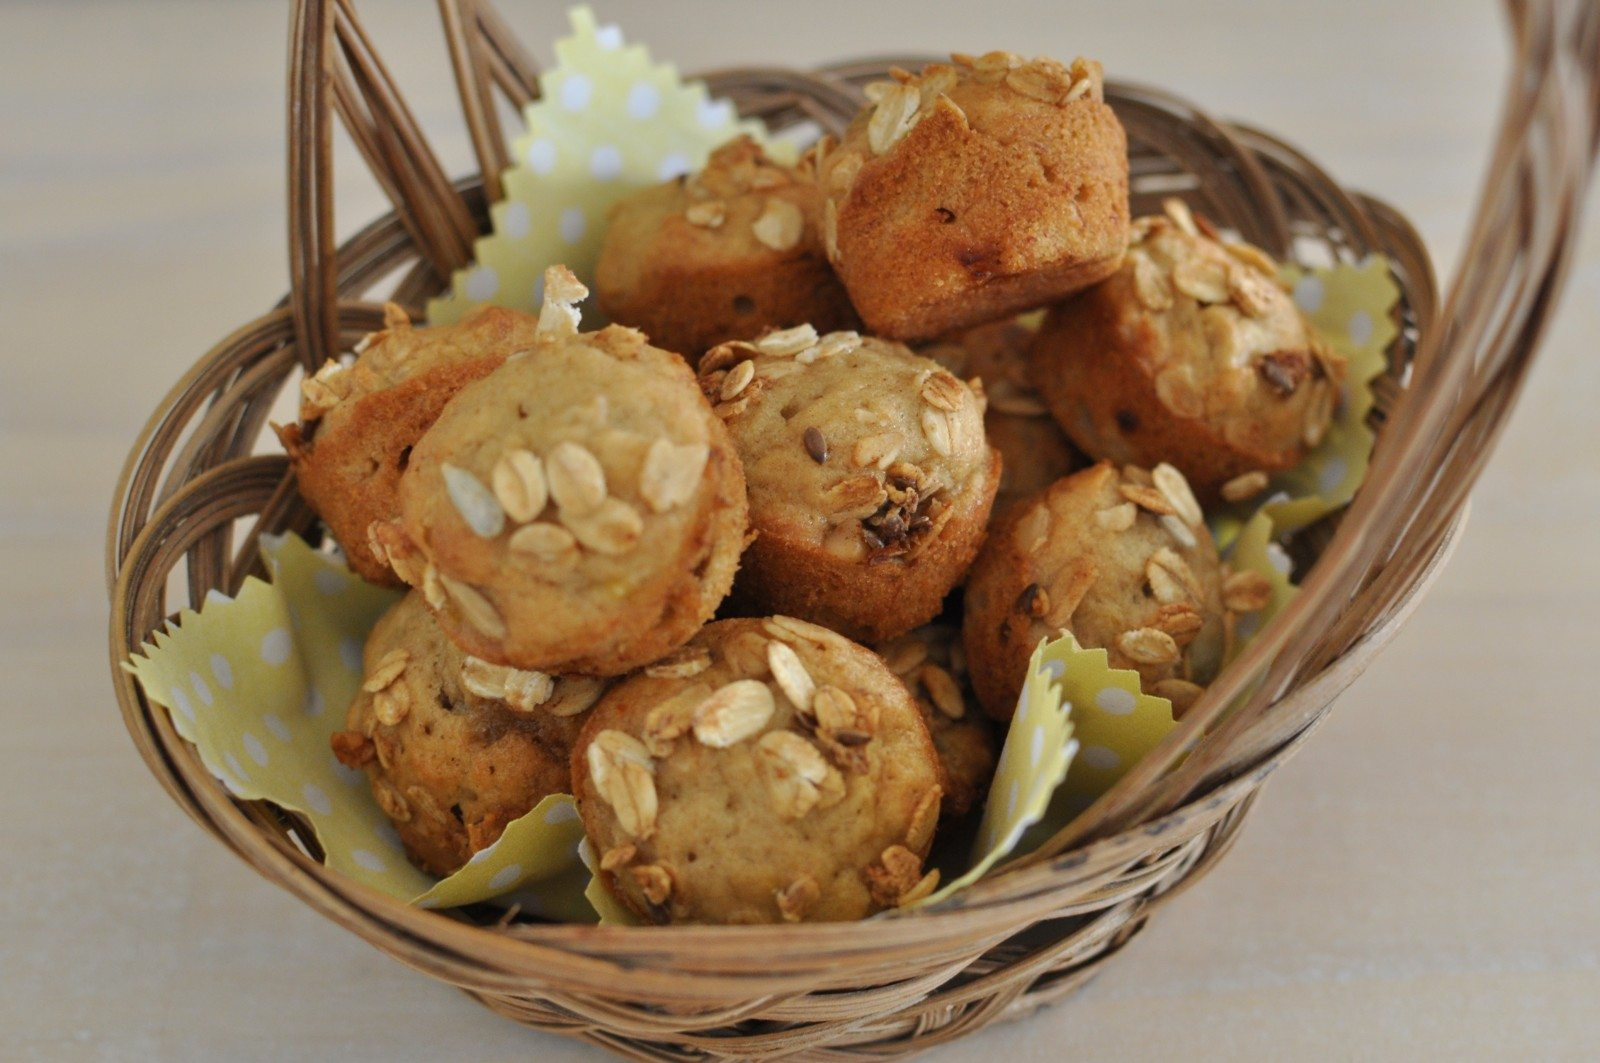 Banana bread muffins